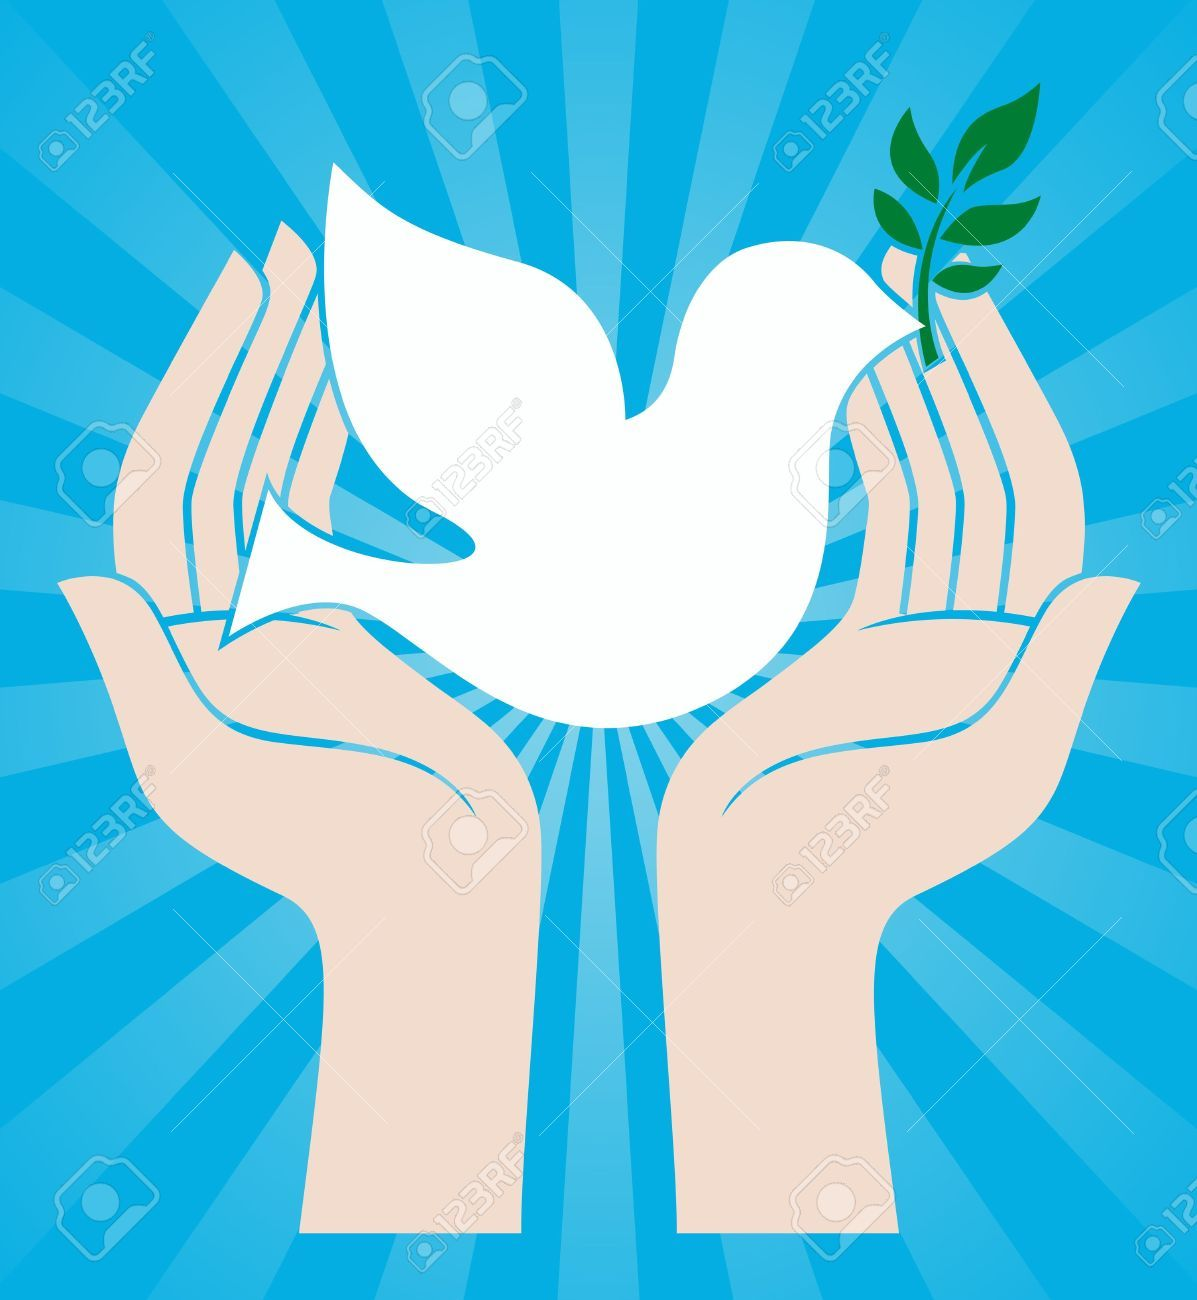 Dove peace symbol holding an olive branch royalty free cliparts dove peace symbol holding an olive branch royalty free cliparts buycottarizona